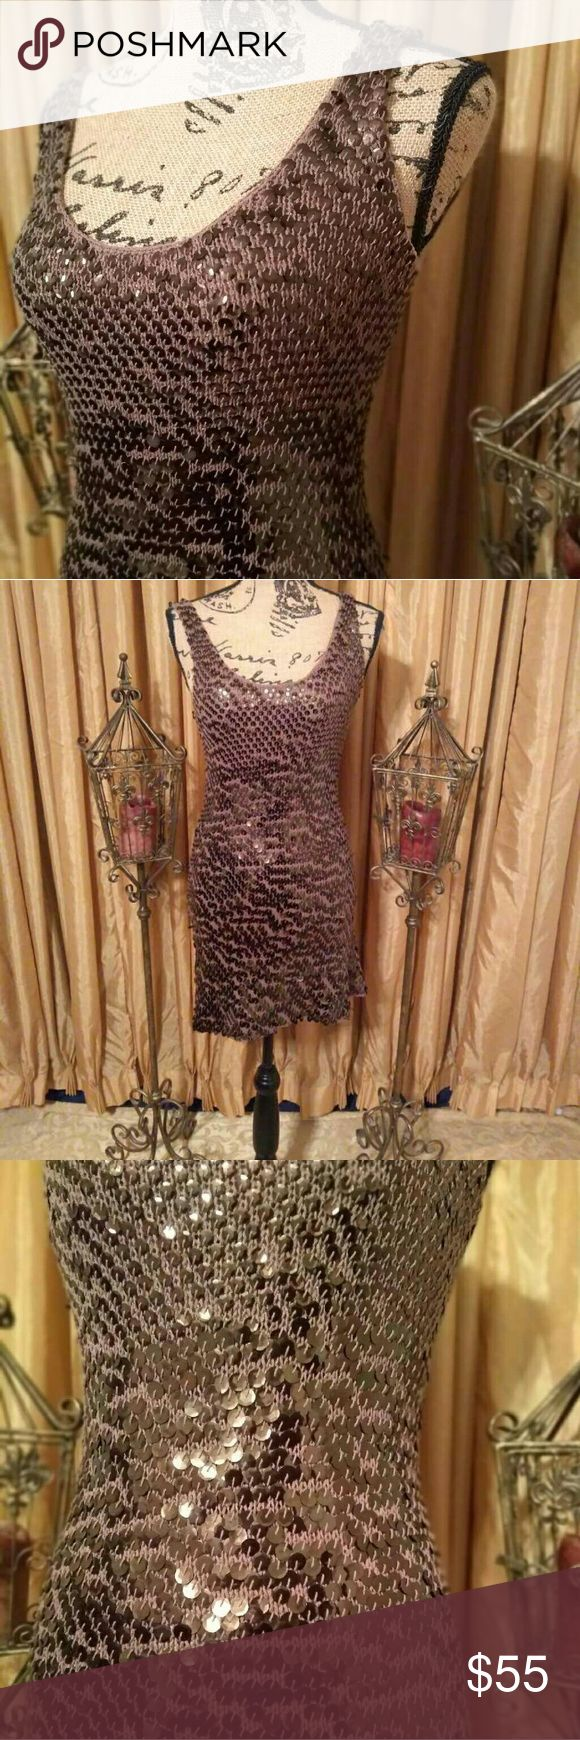 TRINA TURK Dress PRACTICALLY VINTAGE...This 70s inspired dress features a crochet sequin design in the rich color brown. This dress has a little stretch and is sleeveless. Excellent condition. Message for specific details♤ Trina Turk Dresses